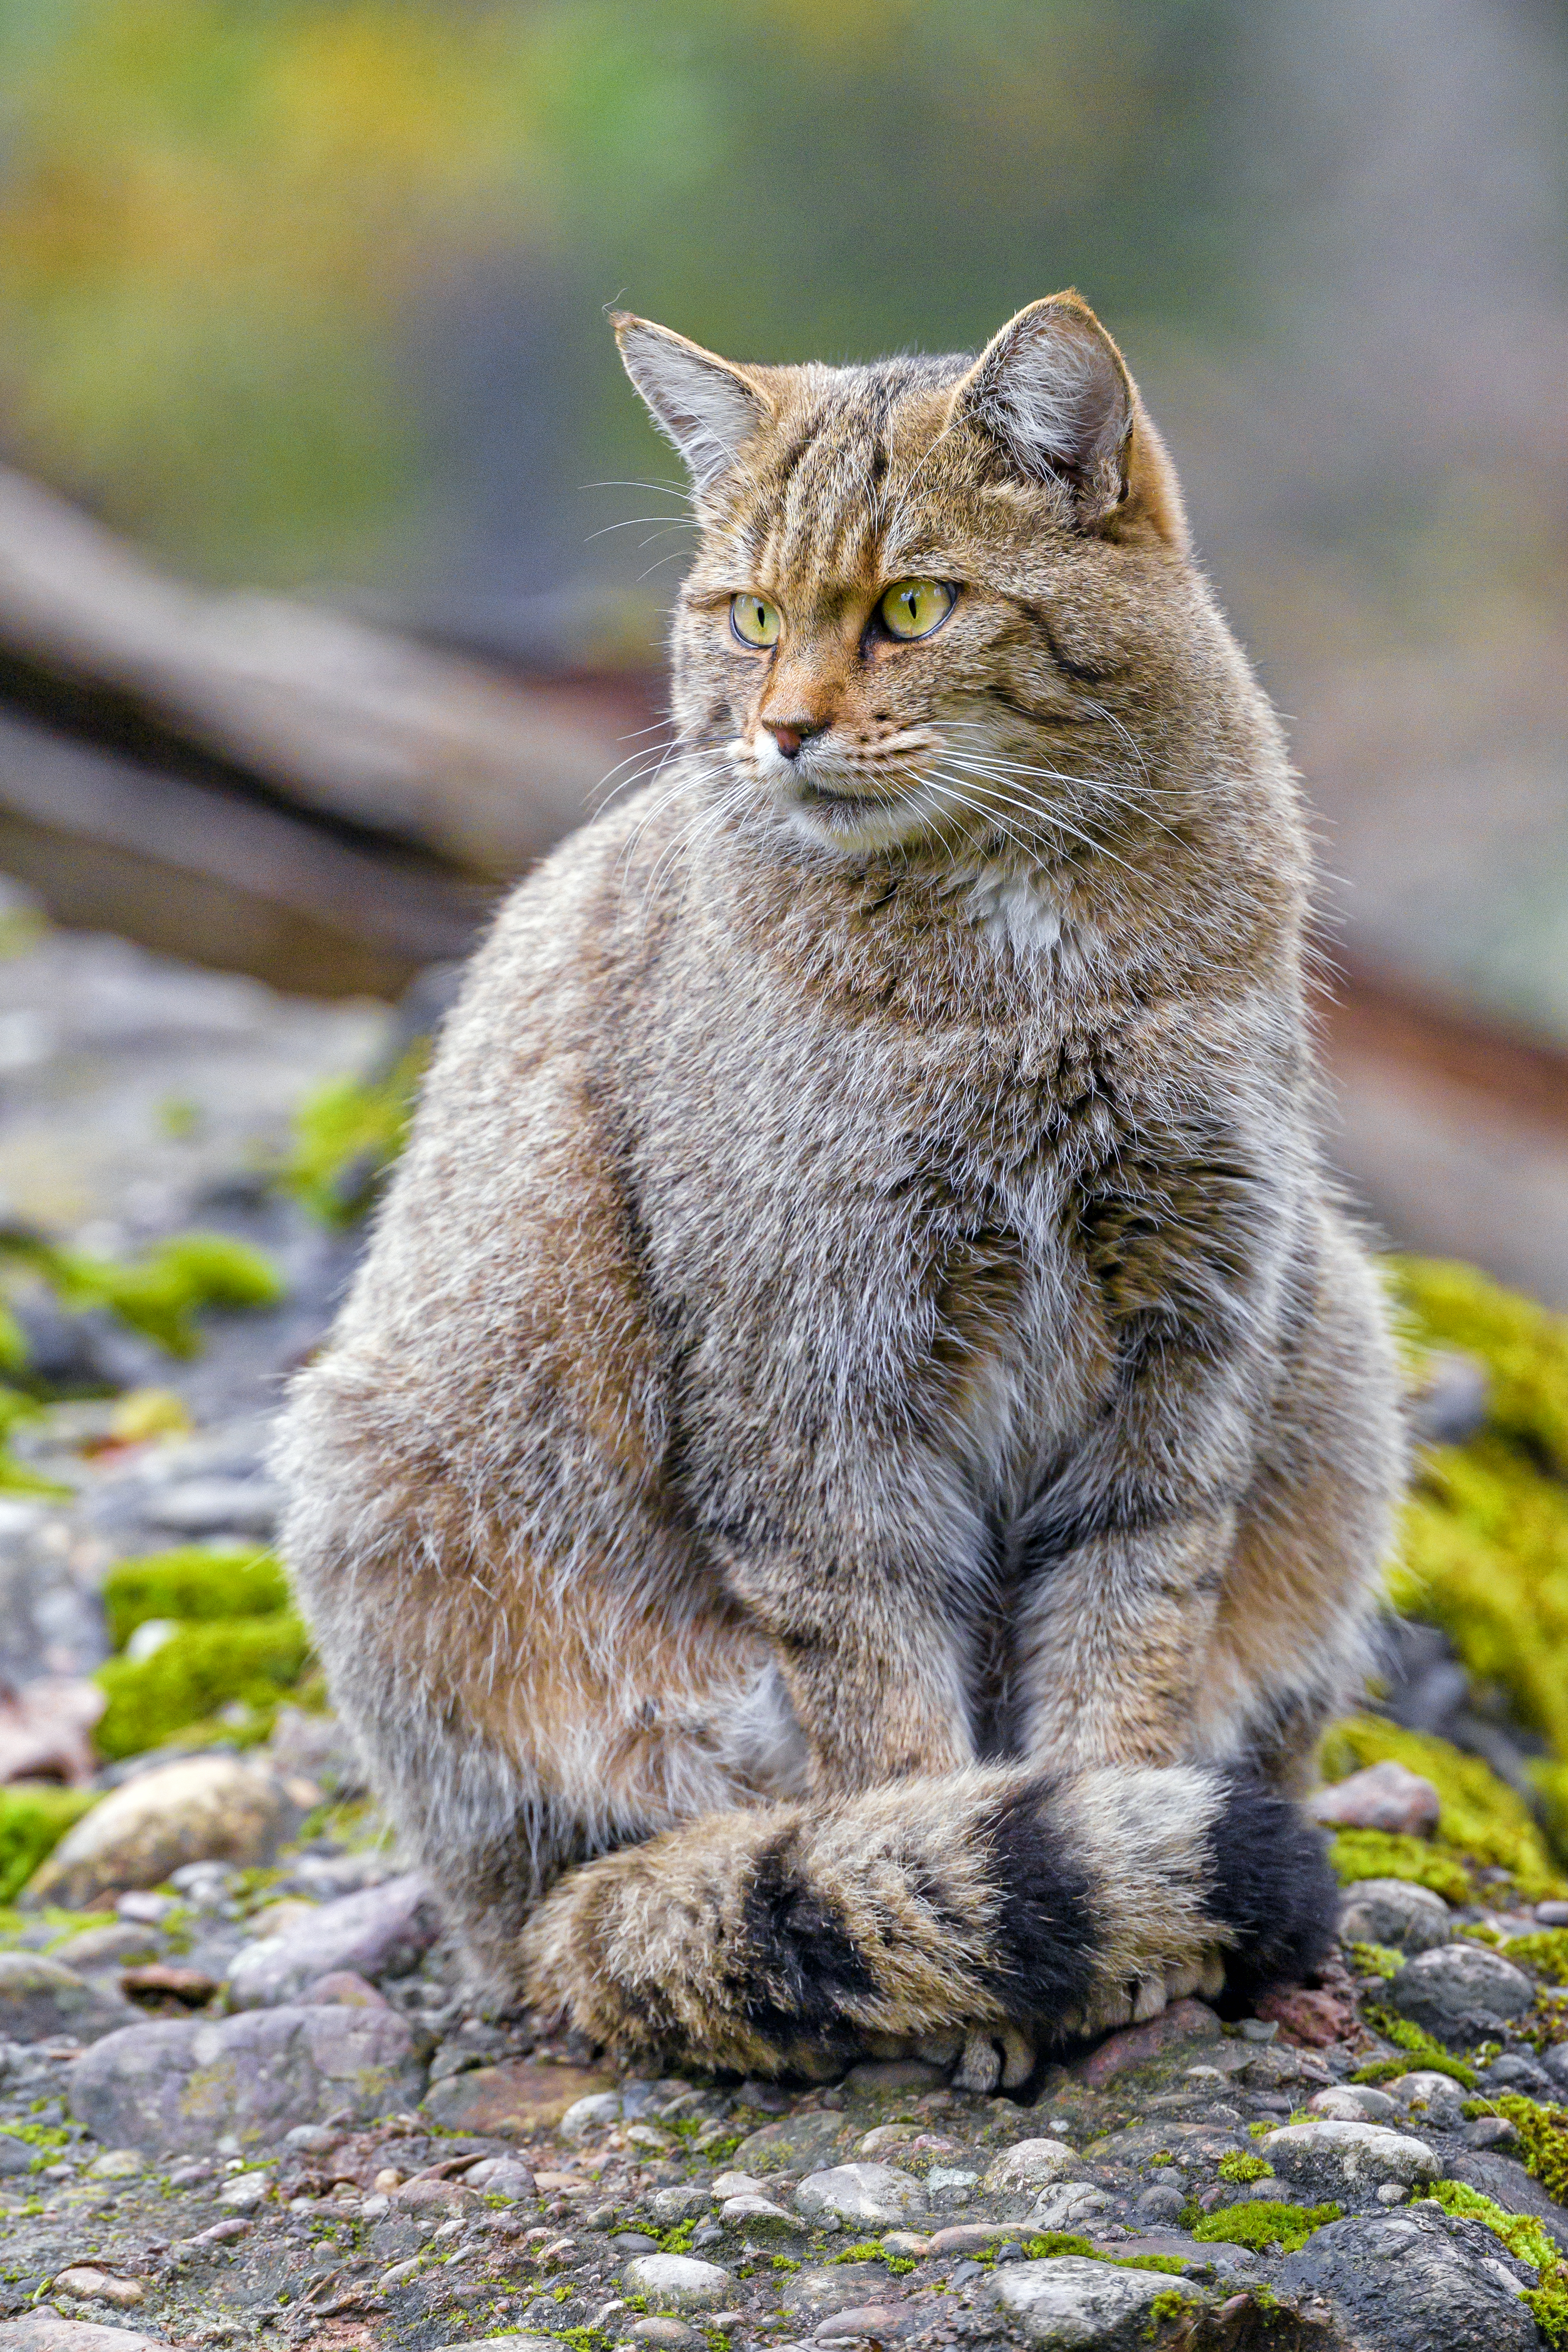 117486 download wallpaper Animals, Wild Cat, Wildcat, Cat, Brown, Animal screensavers and pictures for free